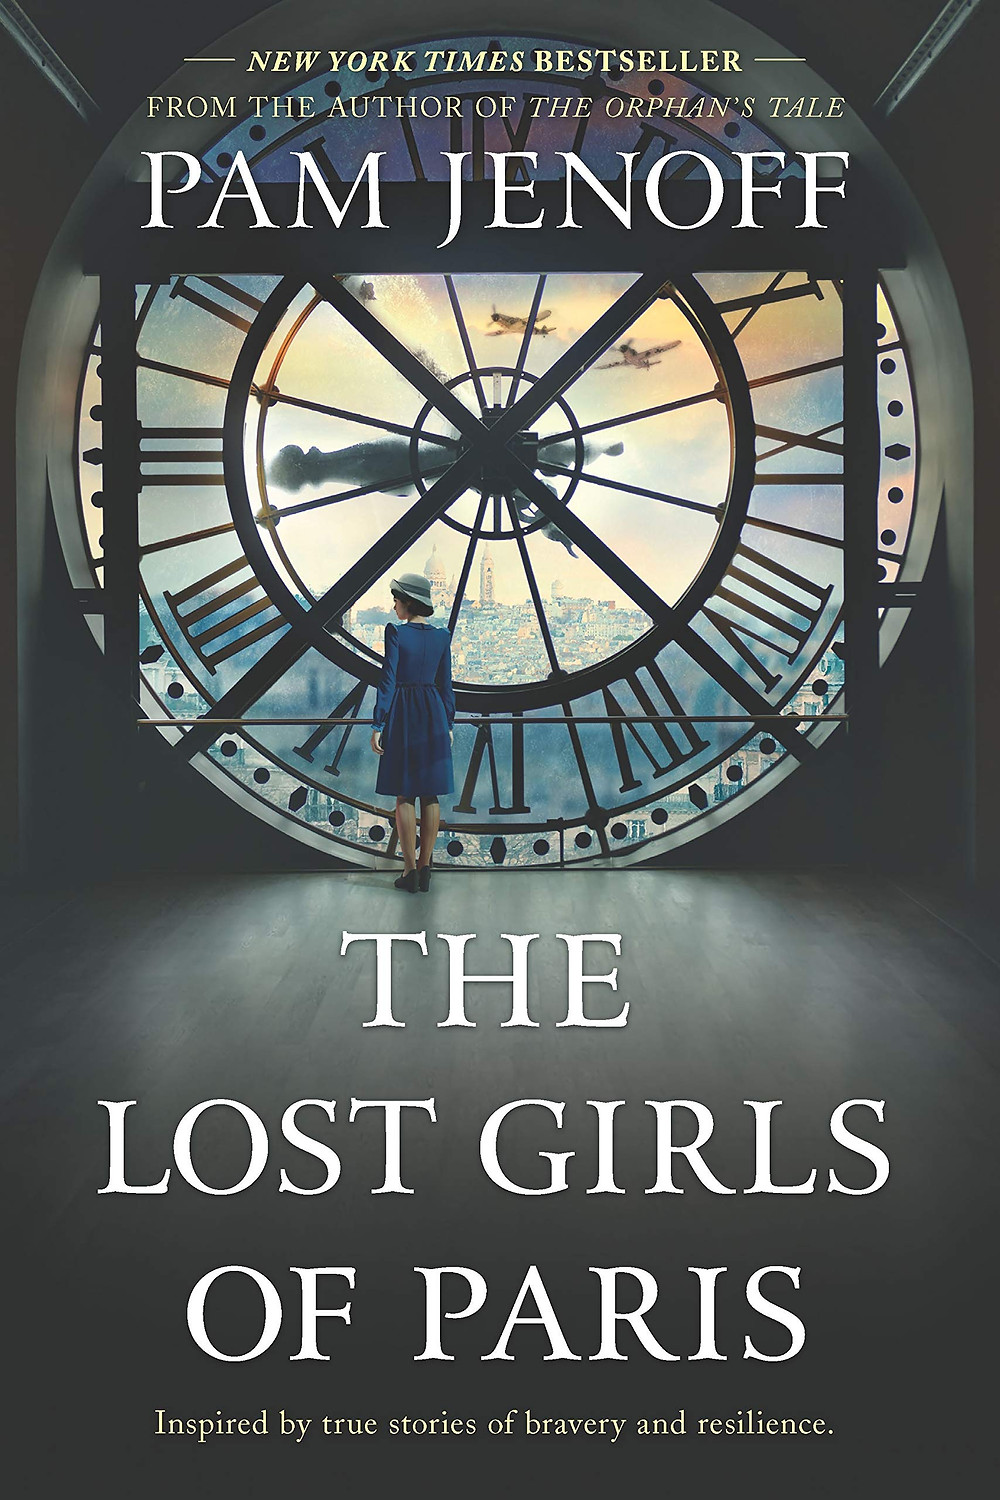 Book cover for The Lost Girls of Paris by Pam Jenoff.